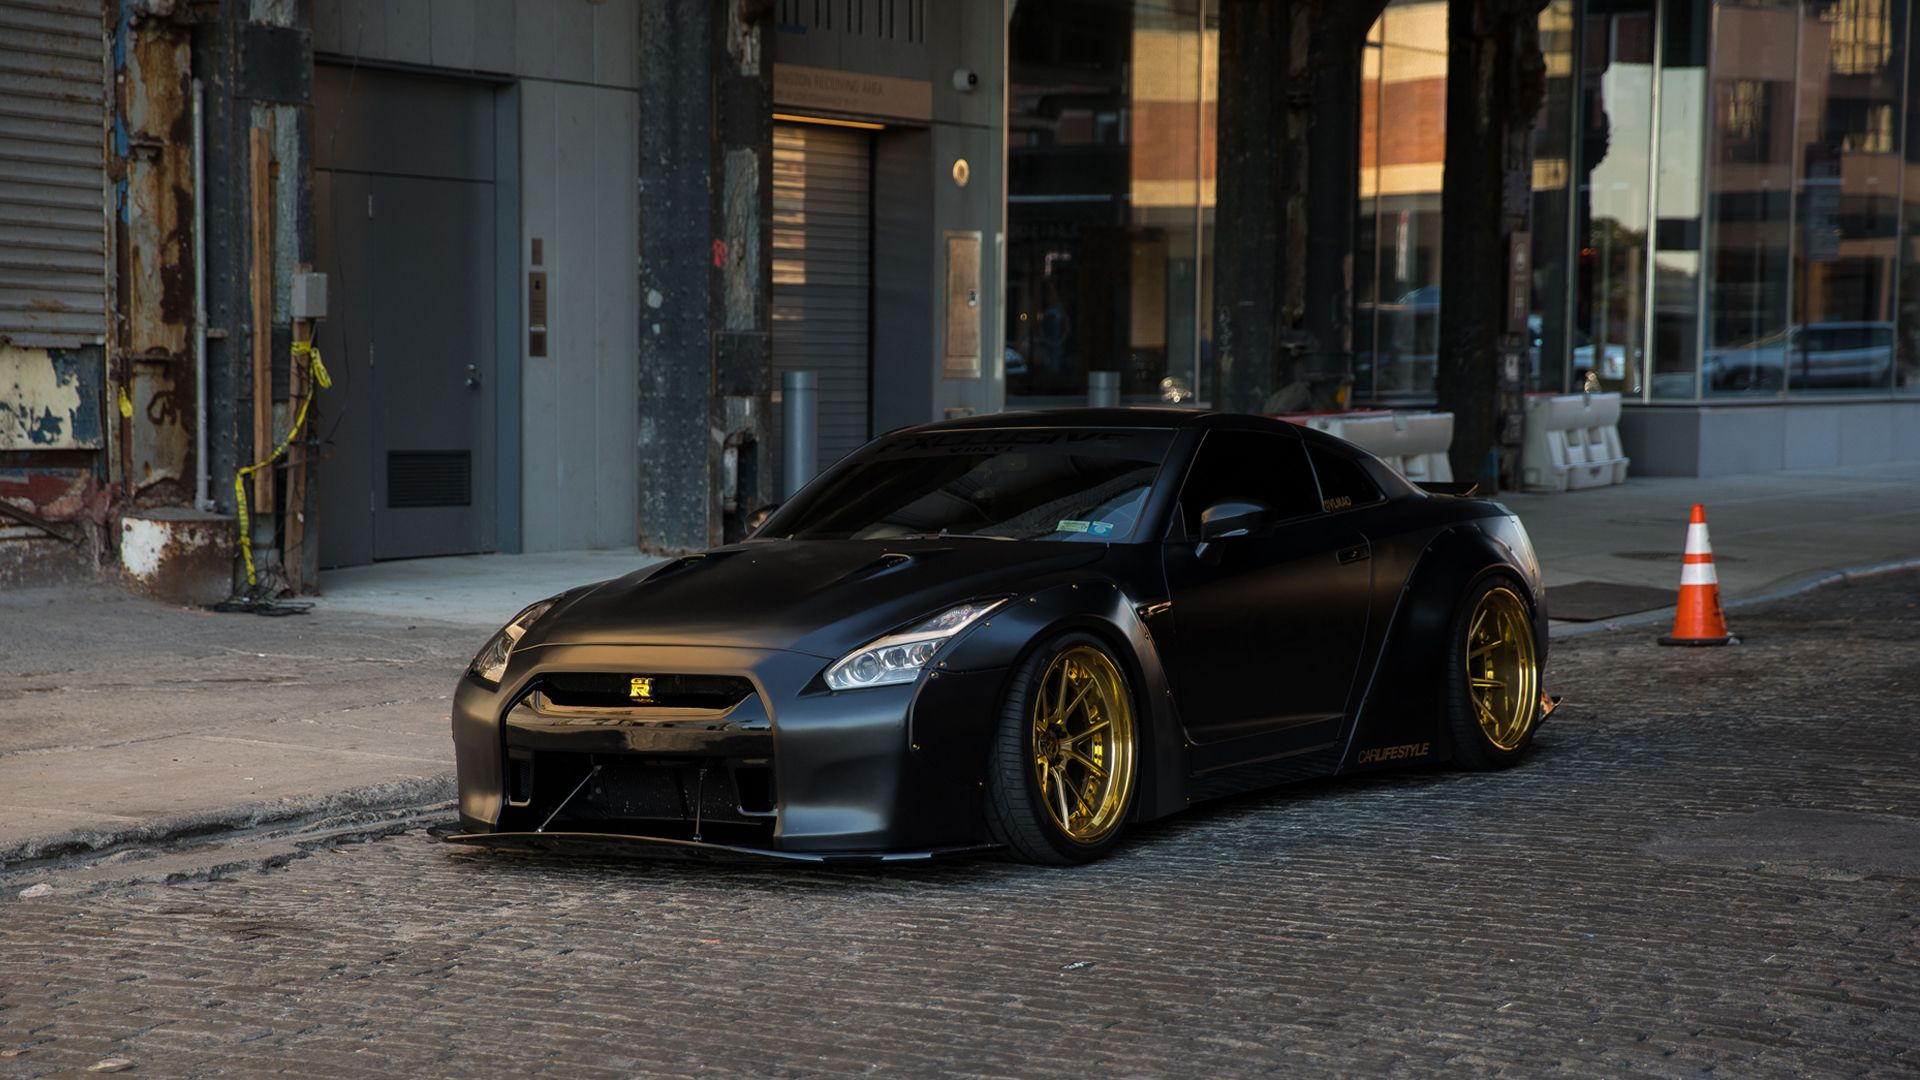 62 Best Free Cool Gtr Wallpapers Wallpaperaccess